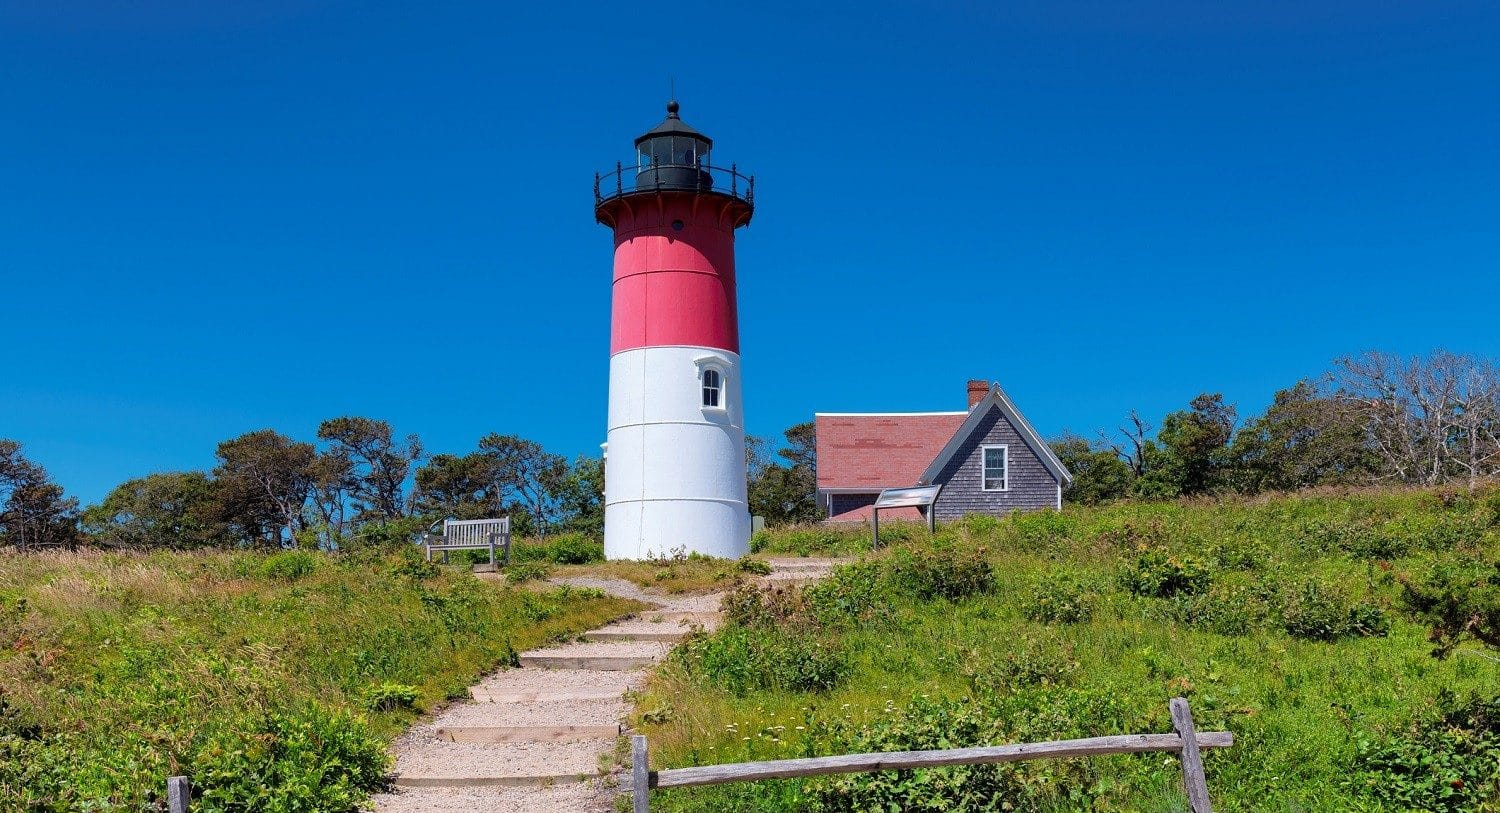 Nauset Light, one of the most famous Cape Cod lighthouses